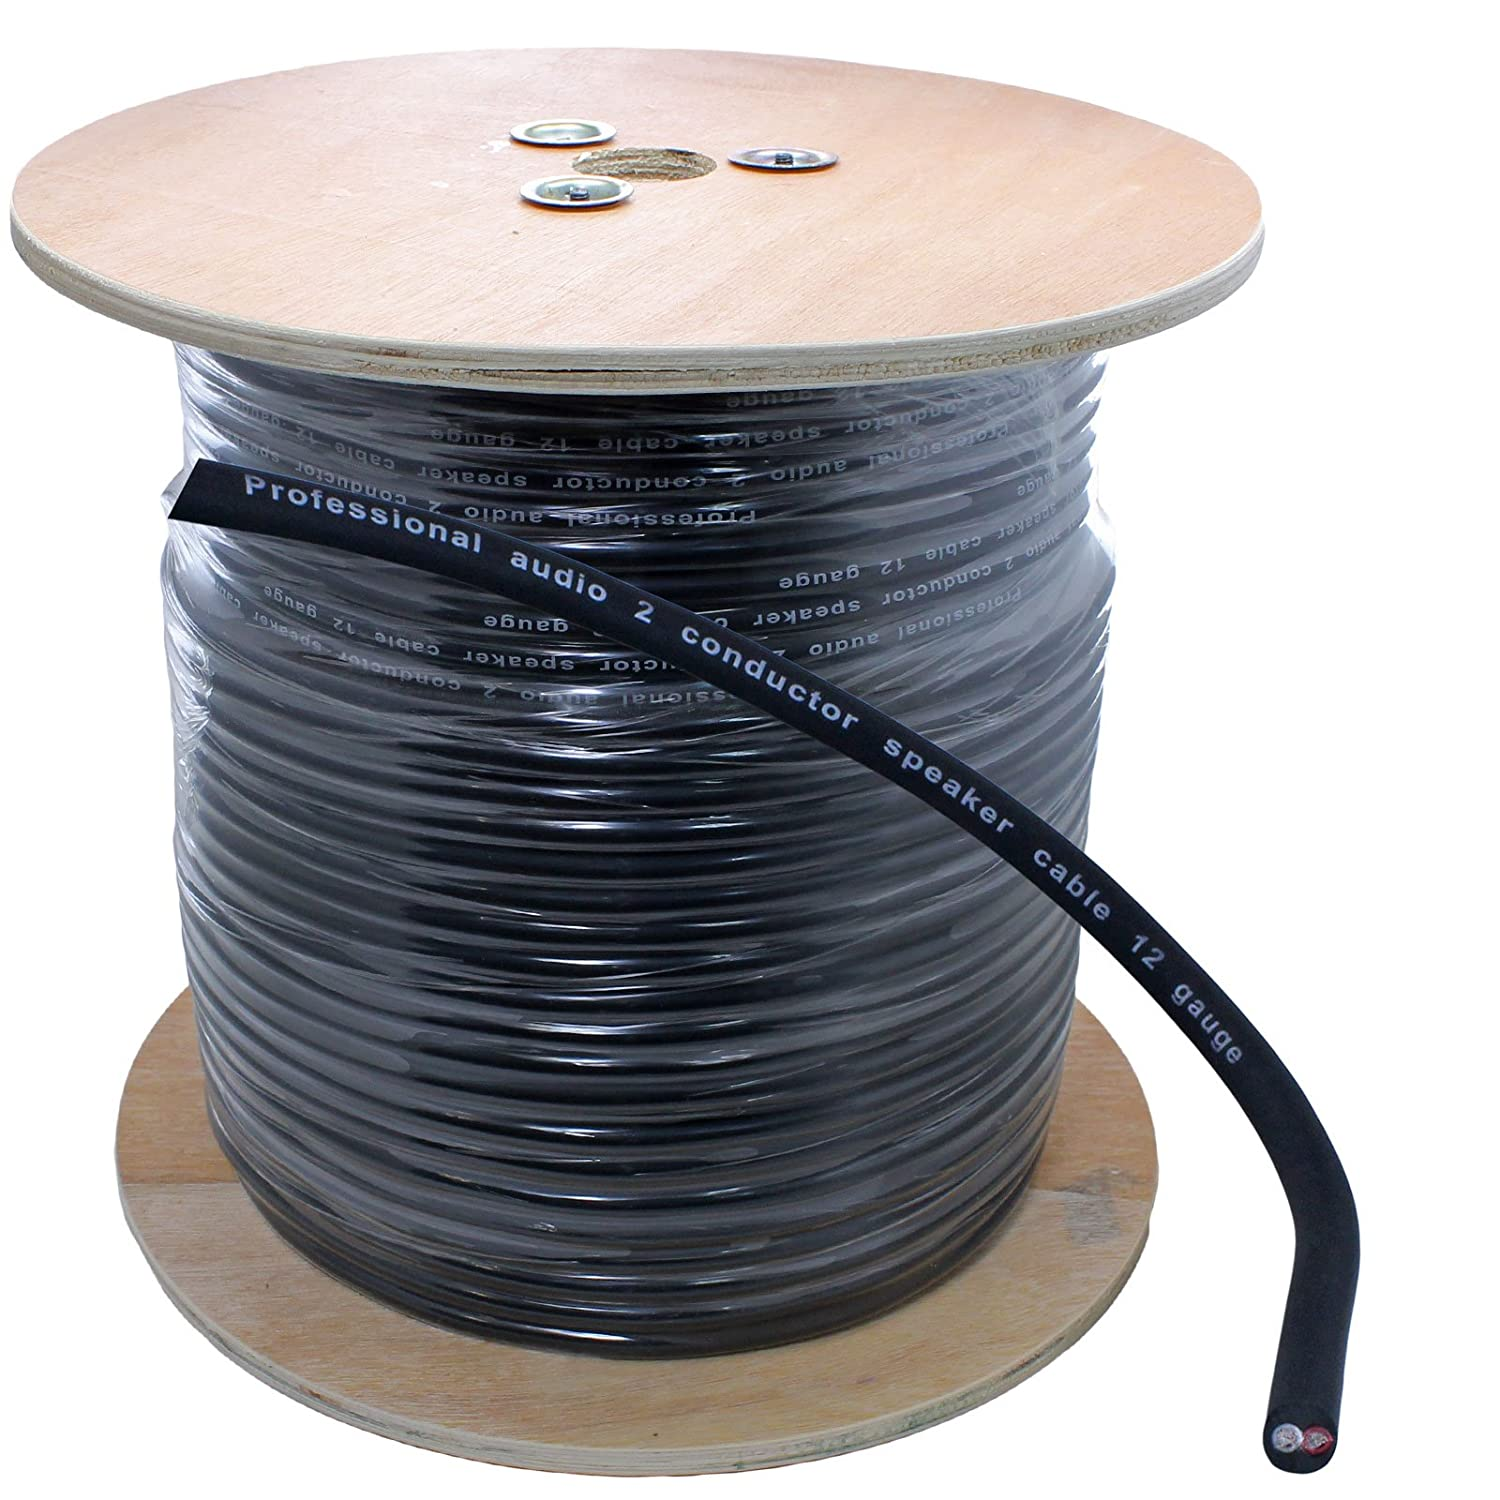 Amazon.com: 500 Ft Spool of pro audio PA 12 Gauge Awg 2 Conductor ...